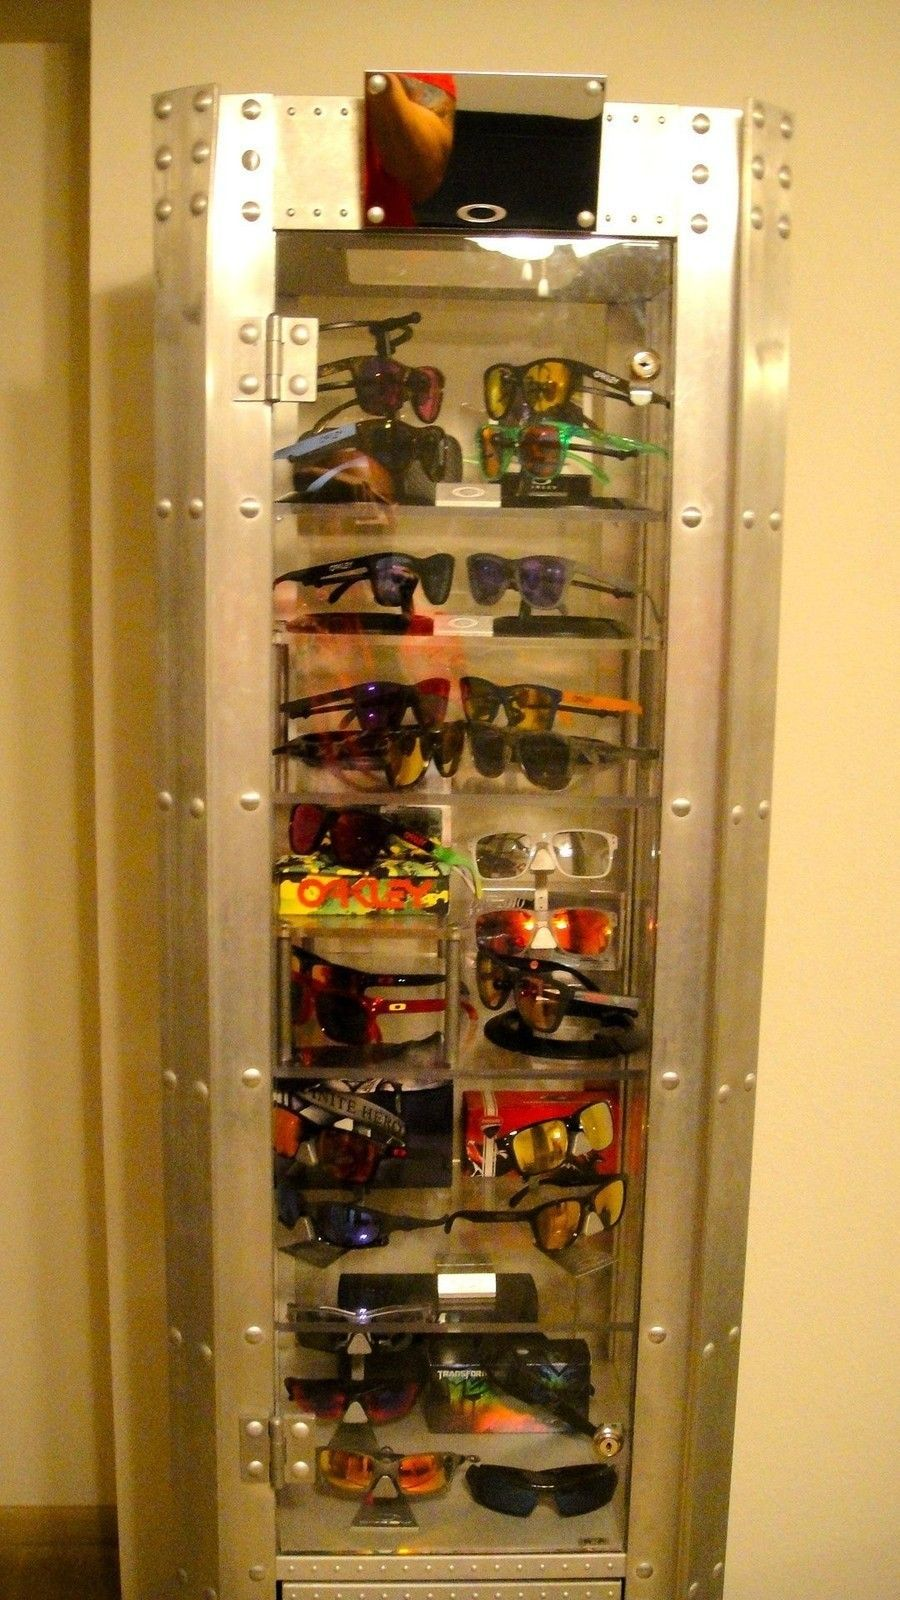 jiveSEVEN's collection w/ new tower - 1DsTL.jpg